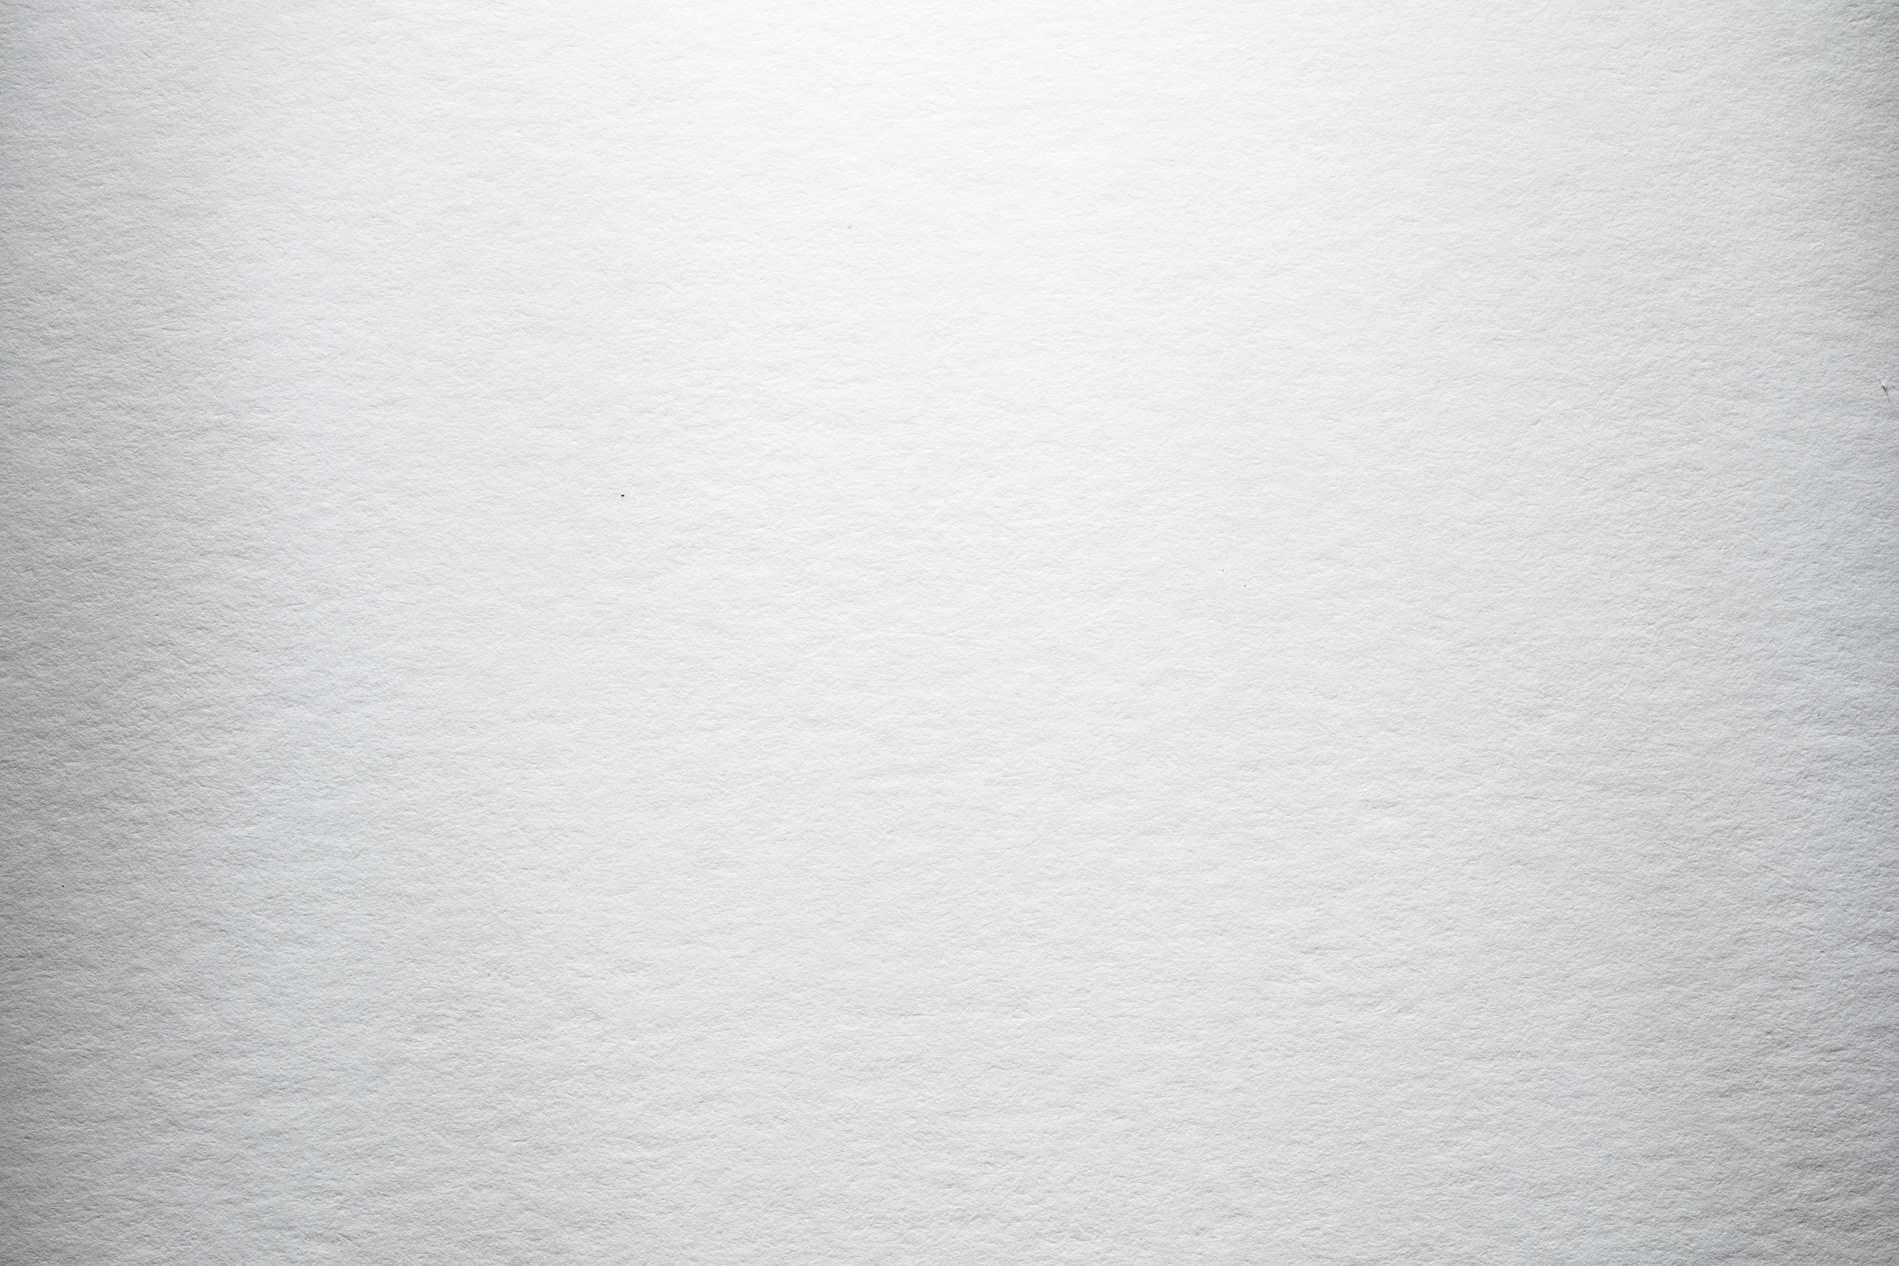 clean white paper background texture - photohdx